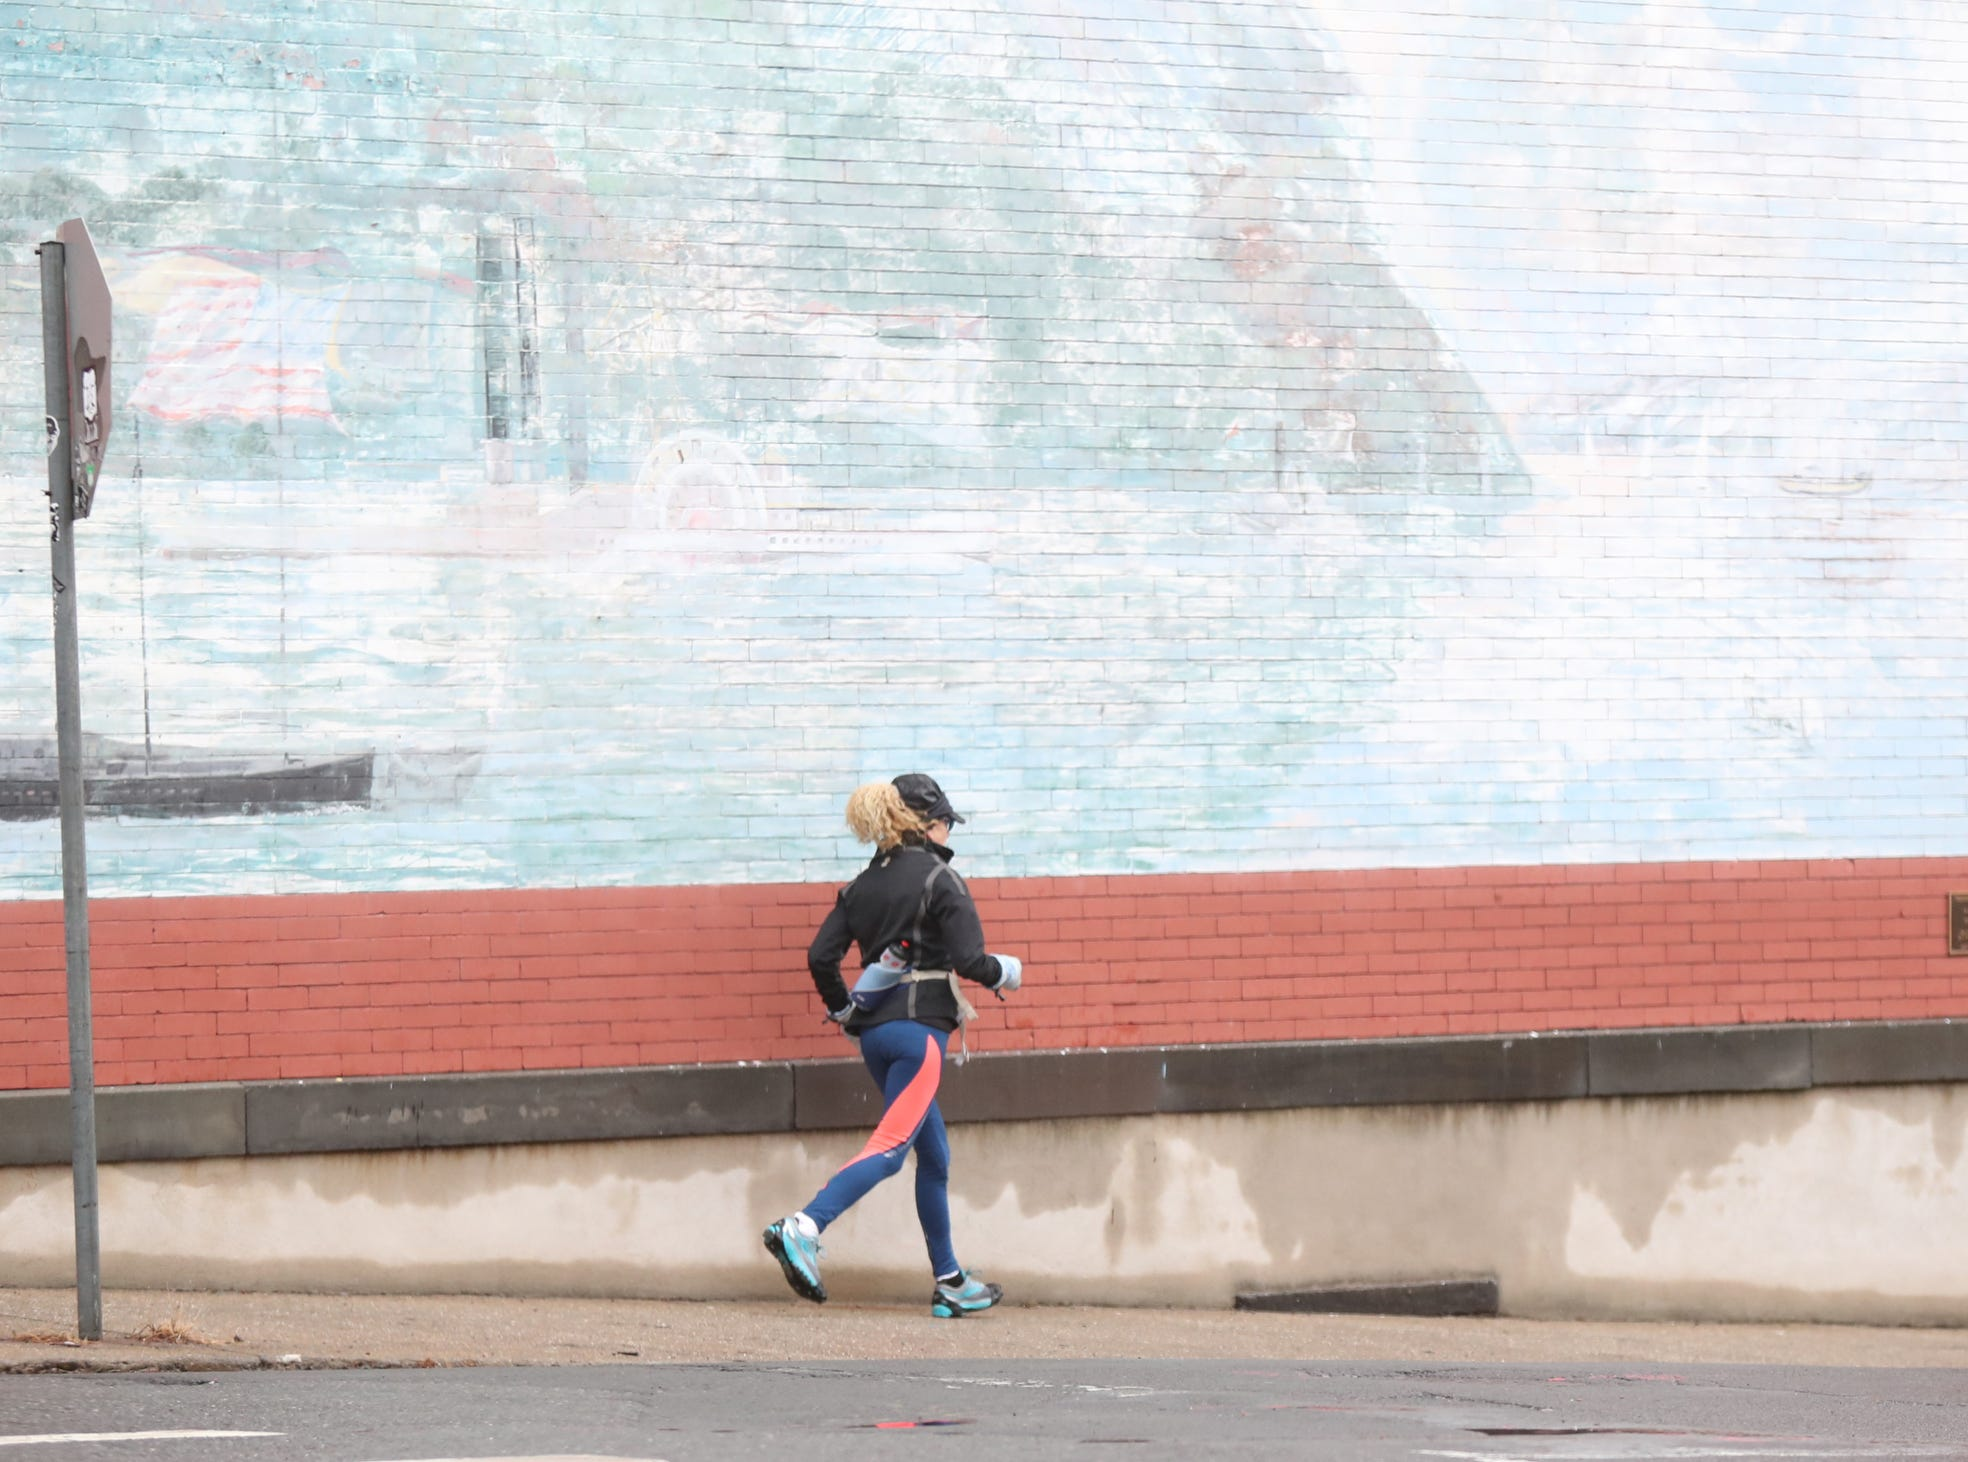 A women jogs down Burd St. in a light rain in Nyack on Sunday, January 20, 2019.